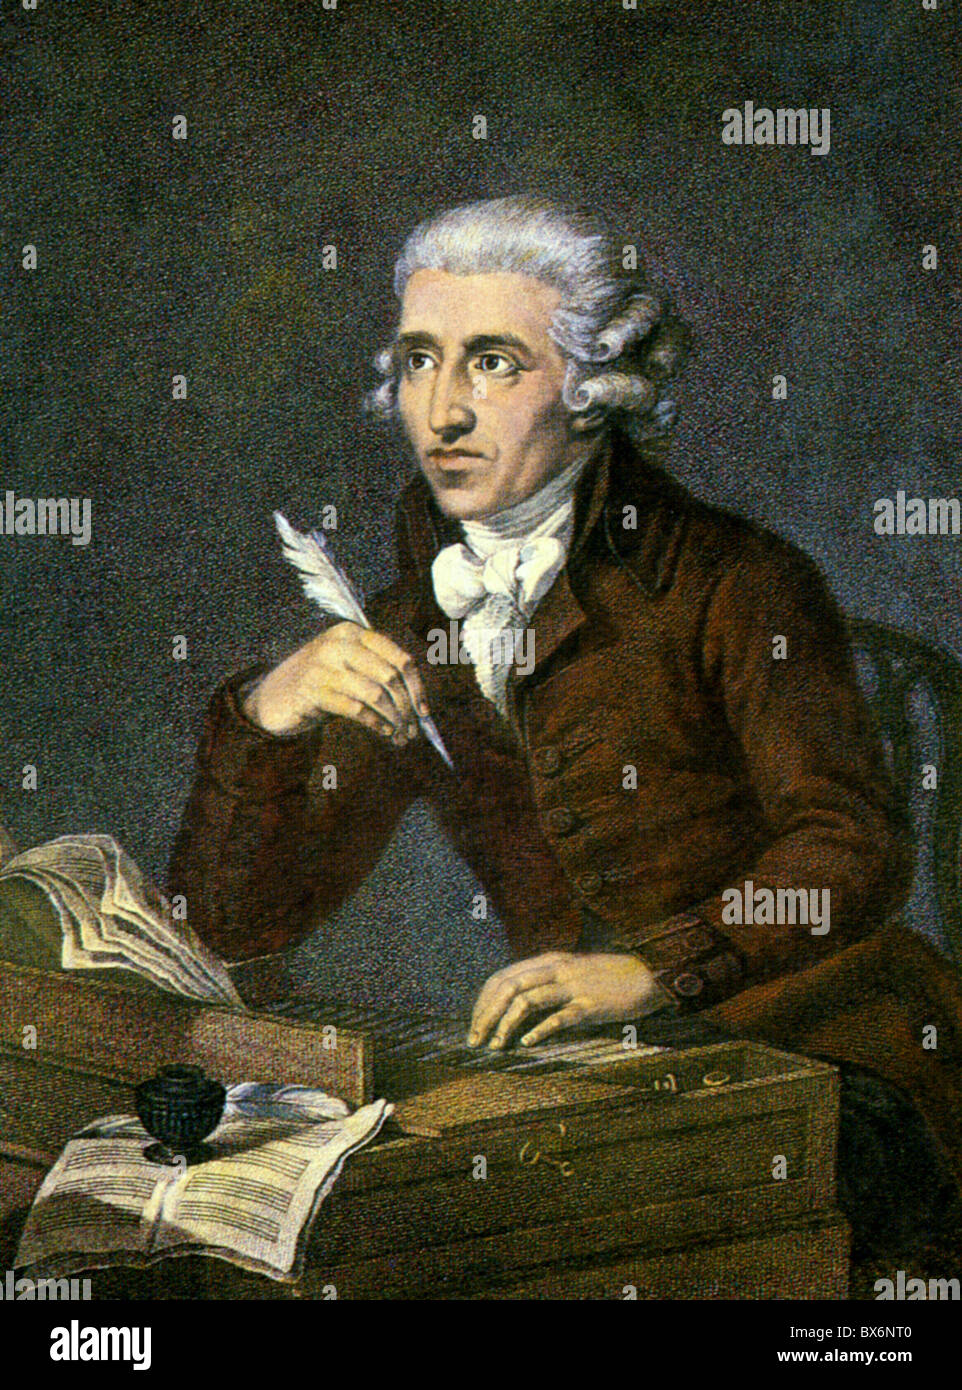 Haydn, Joseph, 31.3.1732 - 31.5.1809, Austrian composer, half length, print after painting by Ludwig Gutterbrunn, Stock Photo